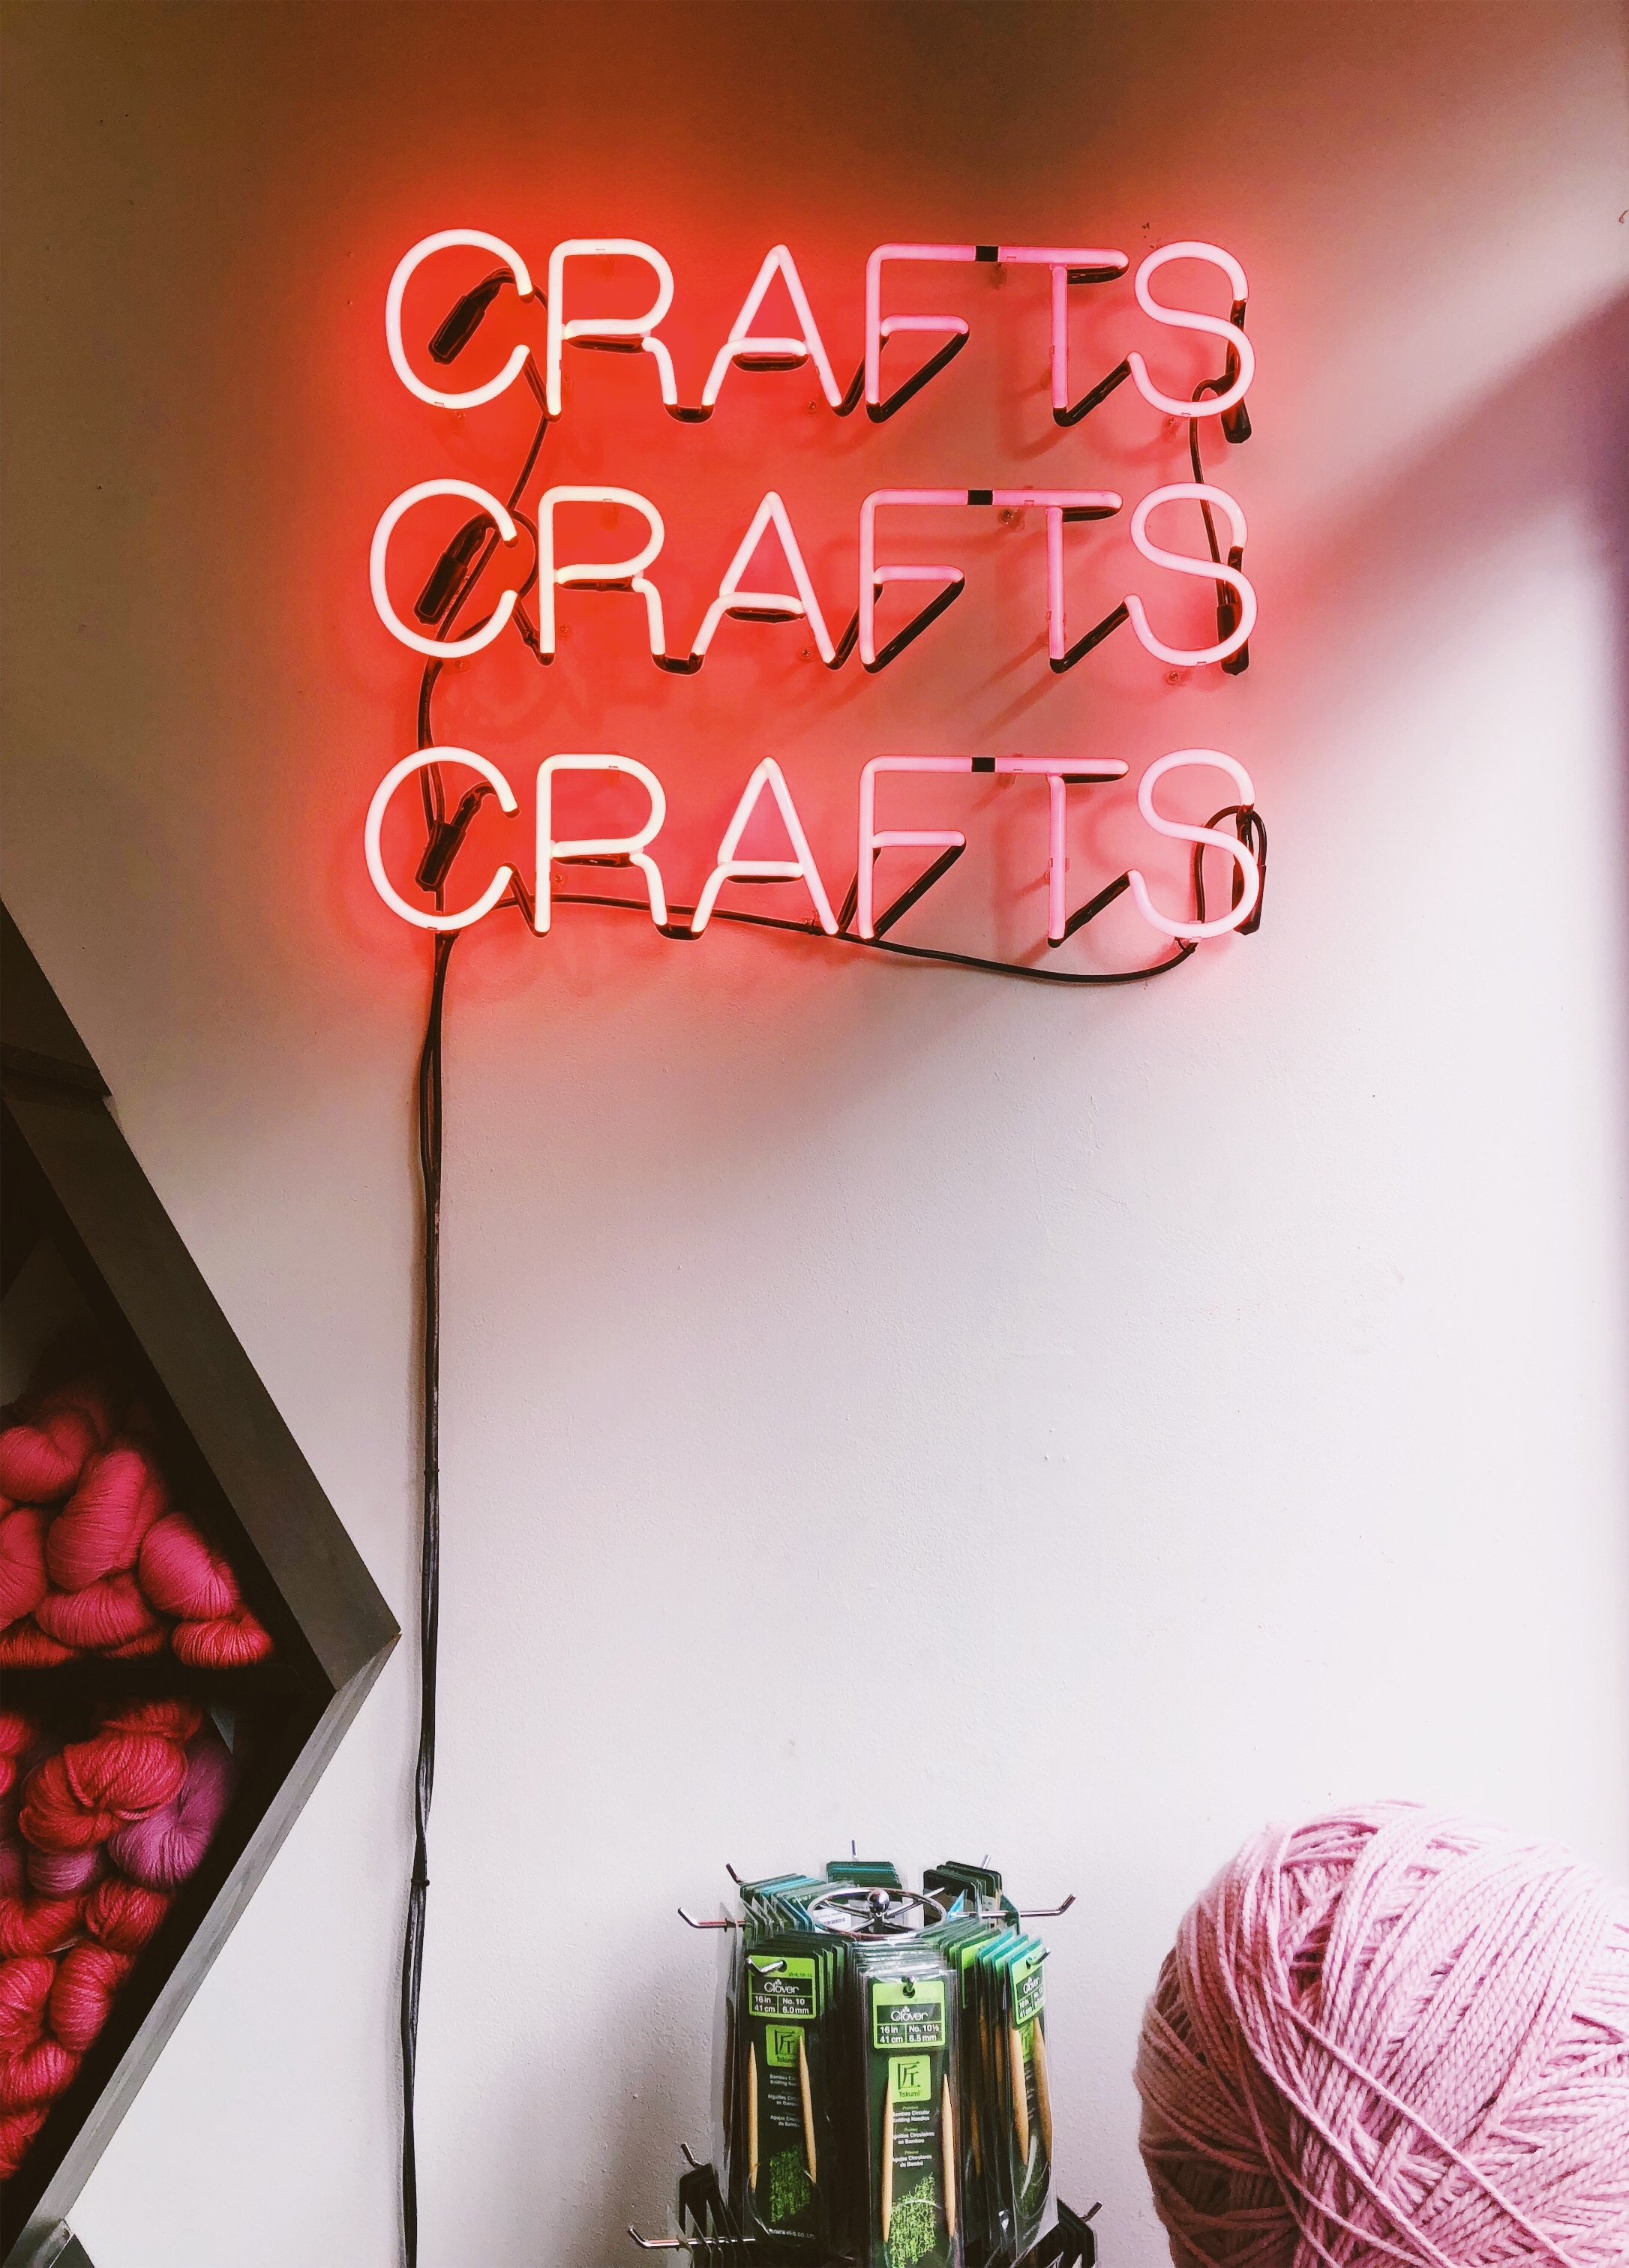 A snapshot of the interior of Brooklyn Craft Company in Greenpoint, Brooklyn.